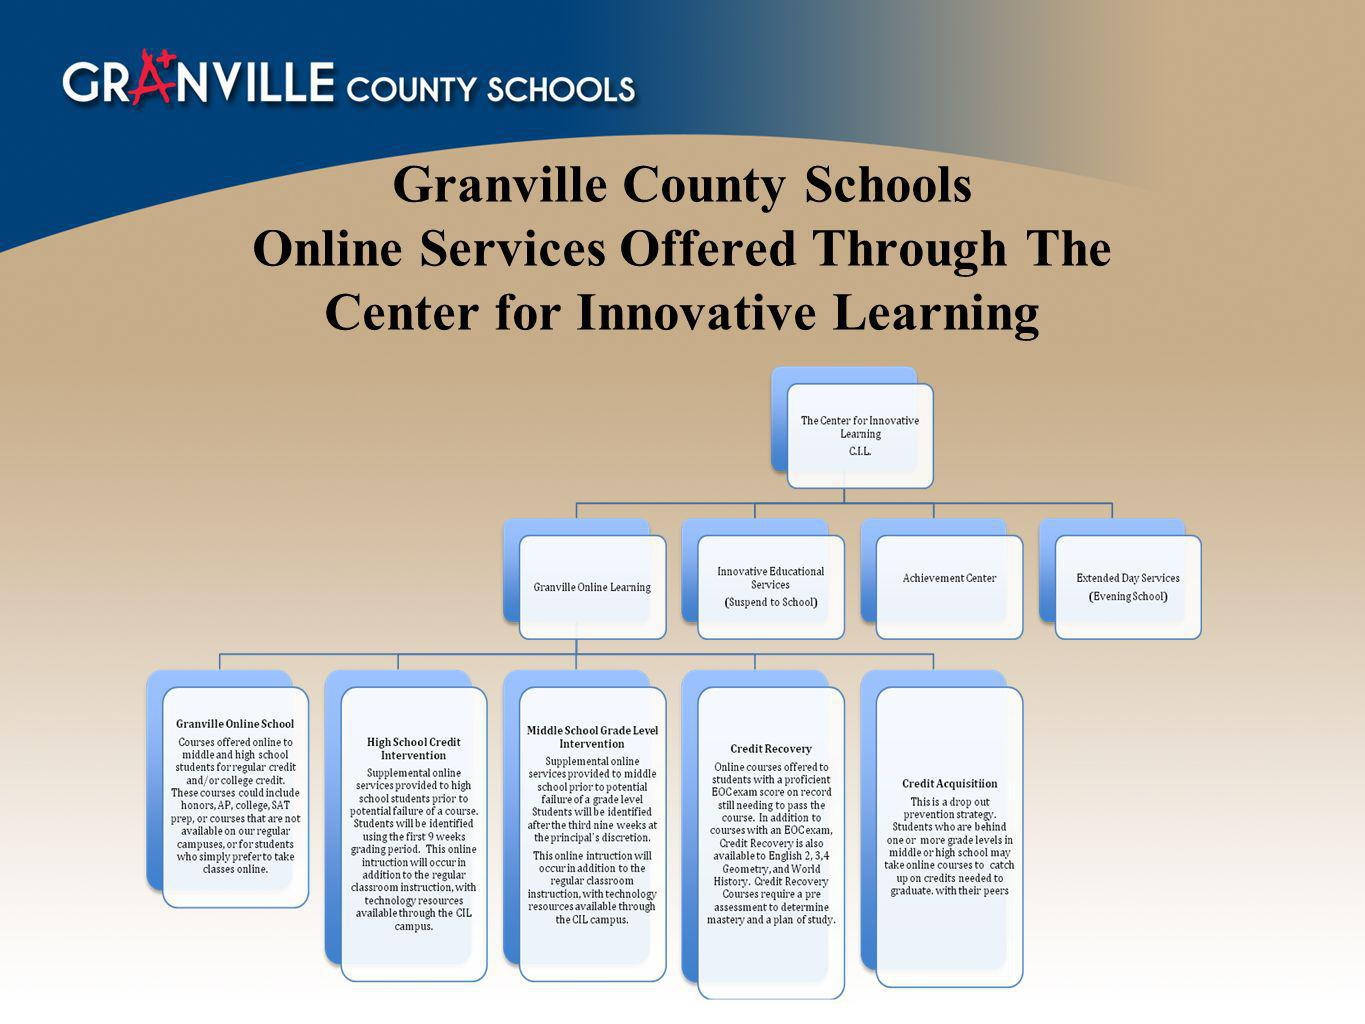 Granville County Schools Online Services Offered Through The Center for Innovative Learning